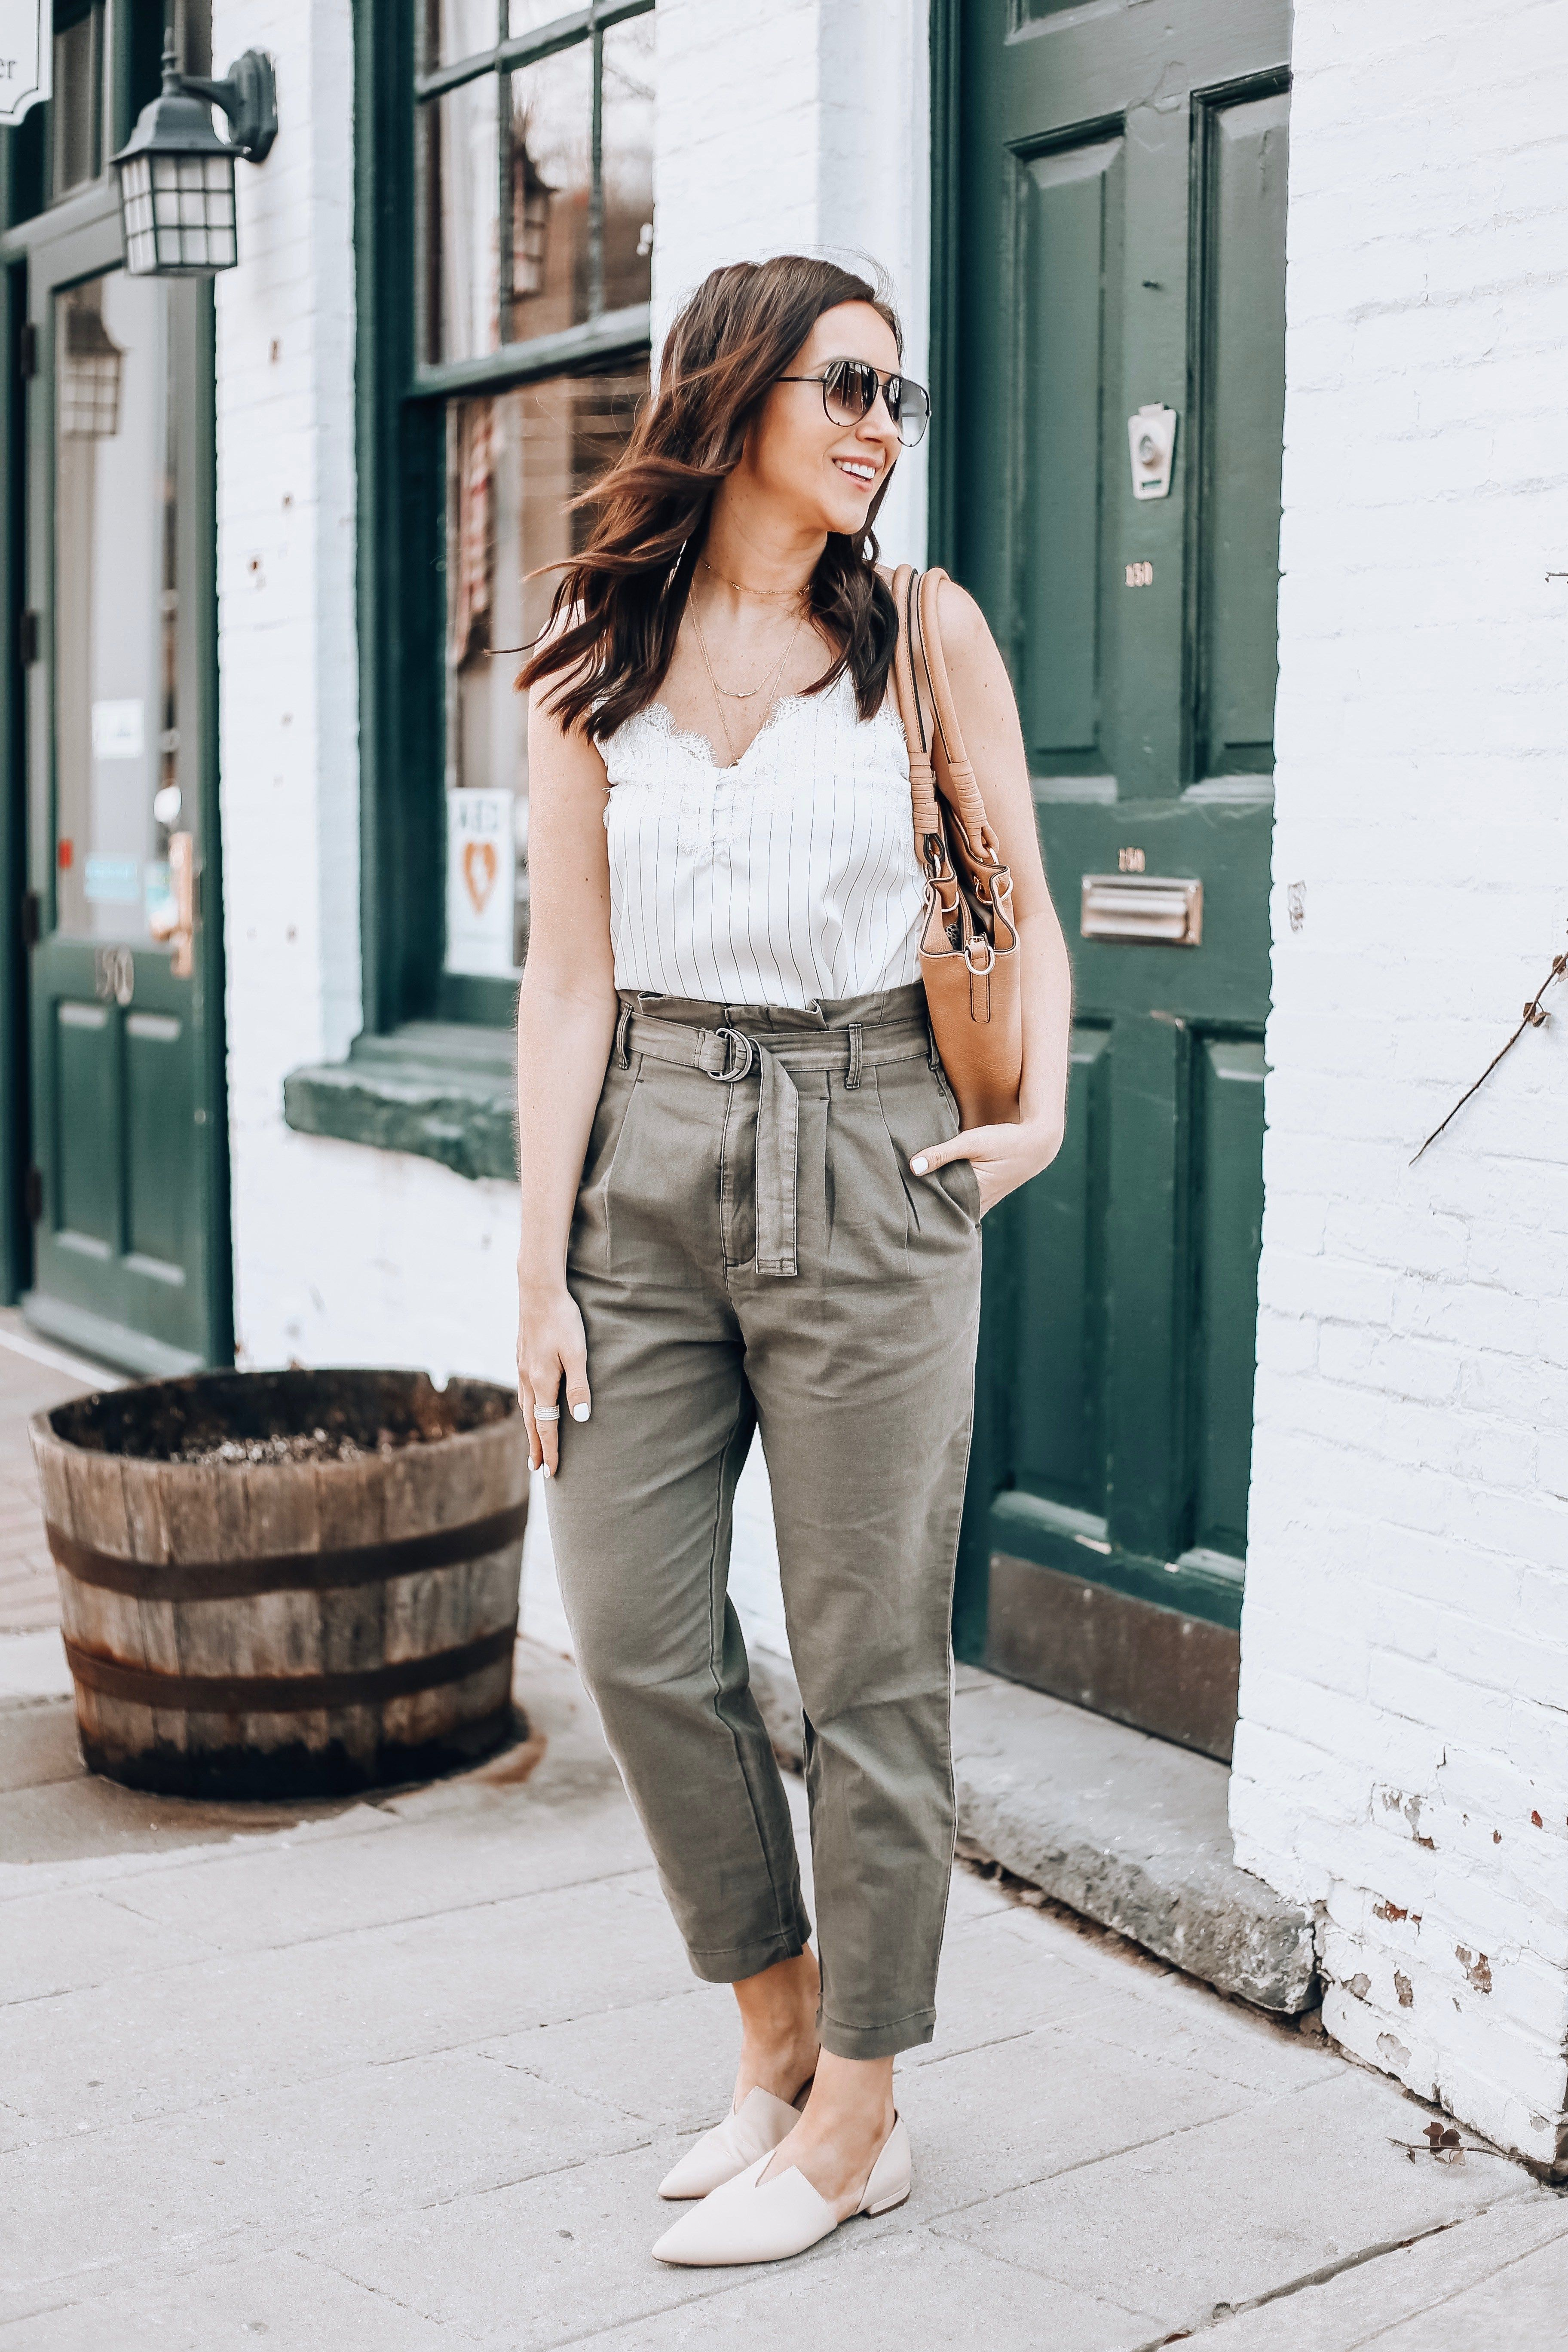 Spring Outfit Ideas With Abercrombie - Blushing Rose Style Blog